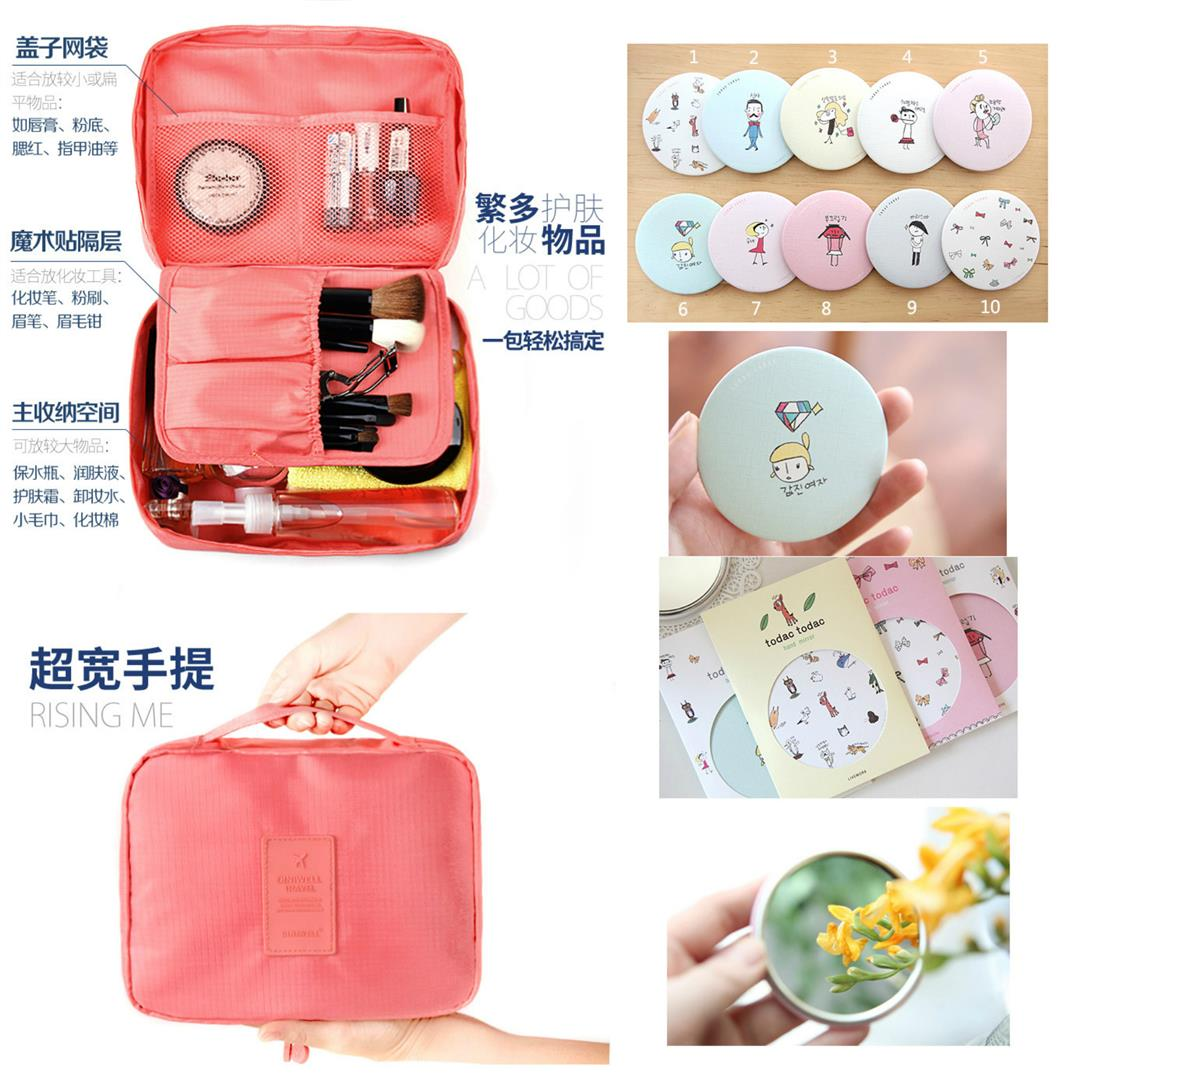 Free Gift Rm5 Korean Cosmetic Bag T End 10 12 2016 927 Pm Travel In 6 1 Organizer An Multi Purpose